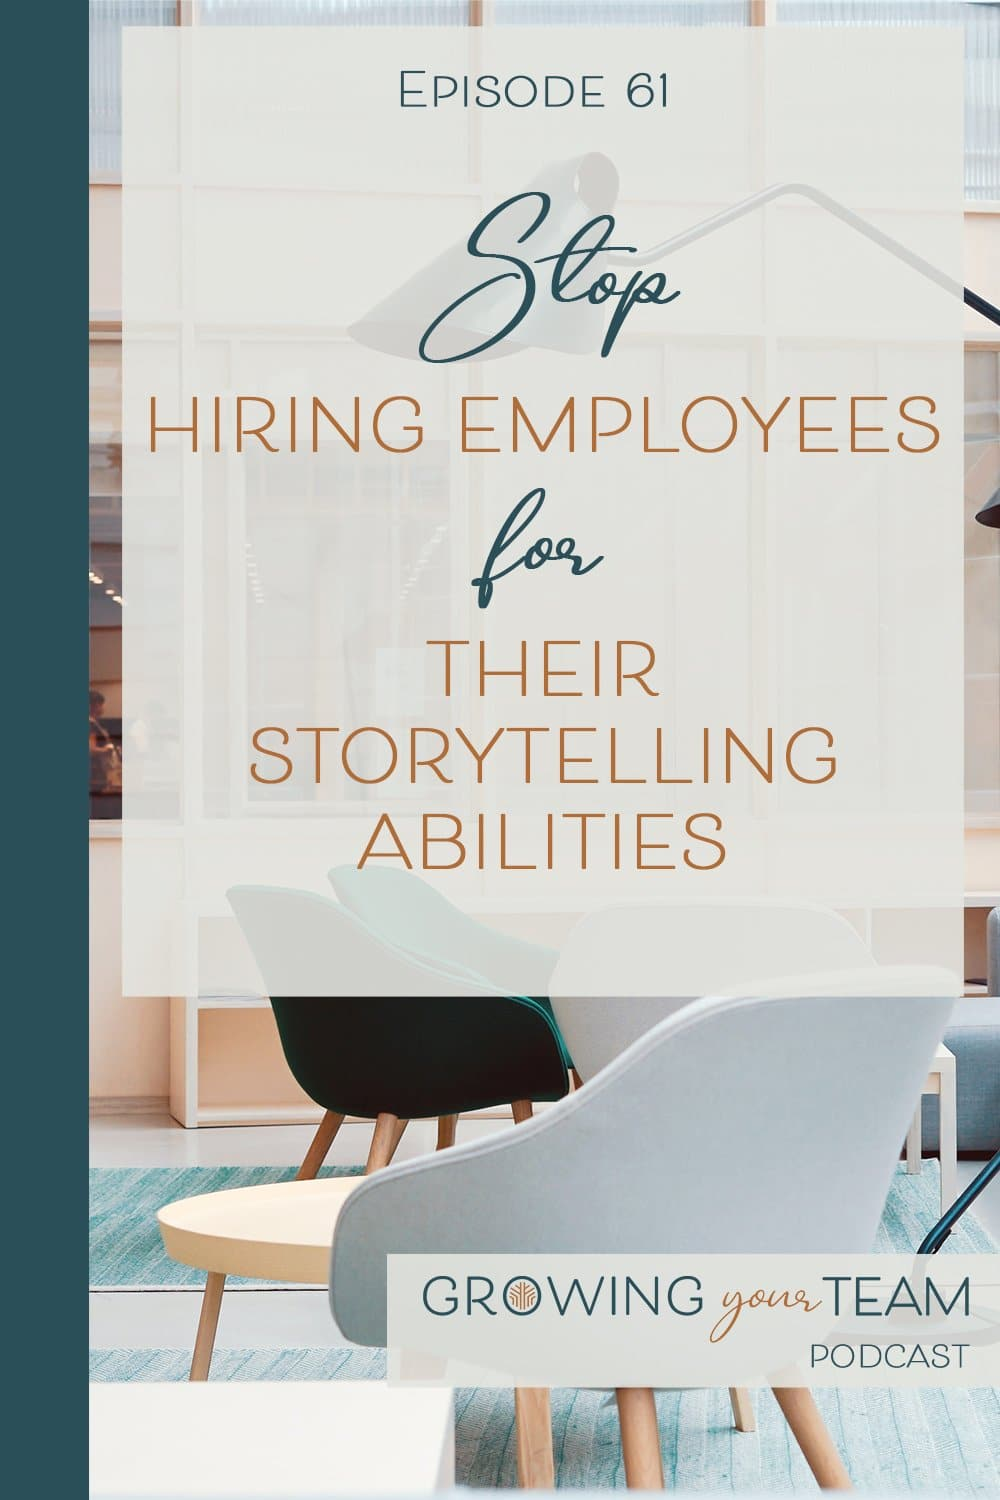 Hiring Employees for Their Storytelling Abilities, Growing You Team Podcast, Jamie Van Cuyk, Small Business